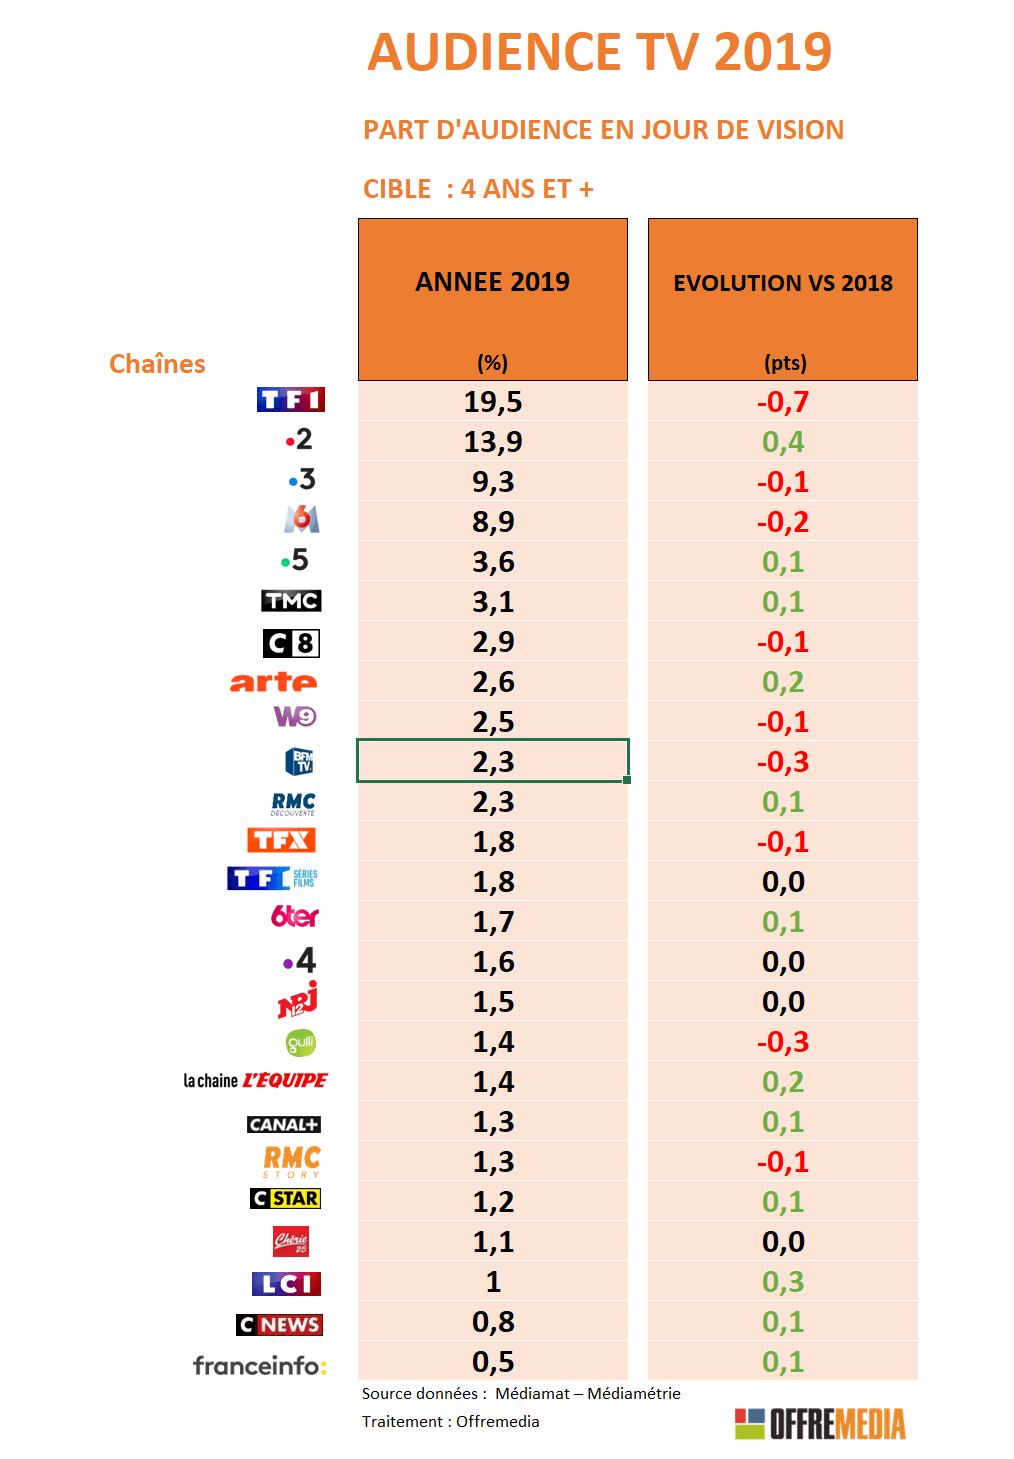 parts d audience tv 2019 tf1 leader